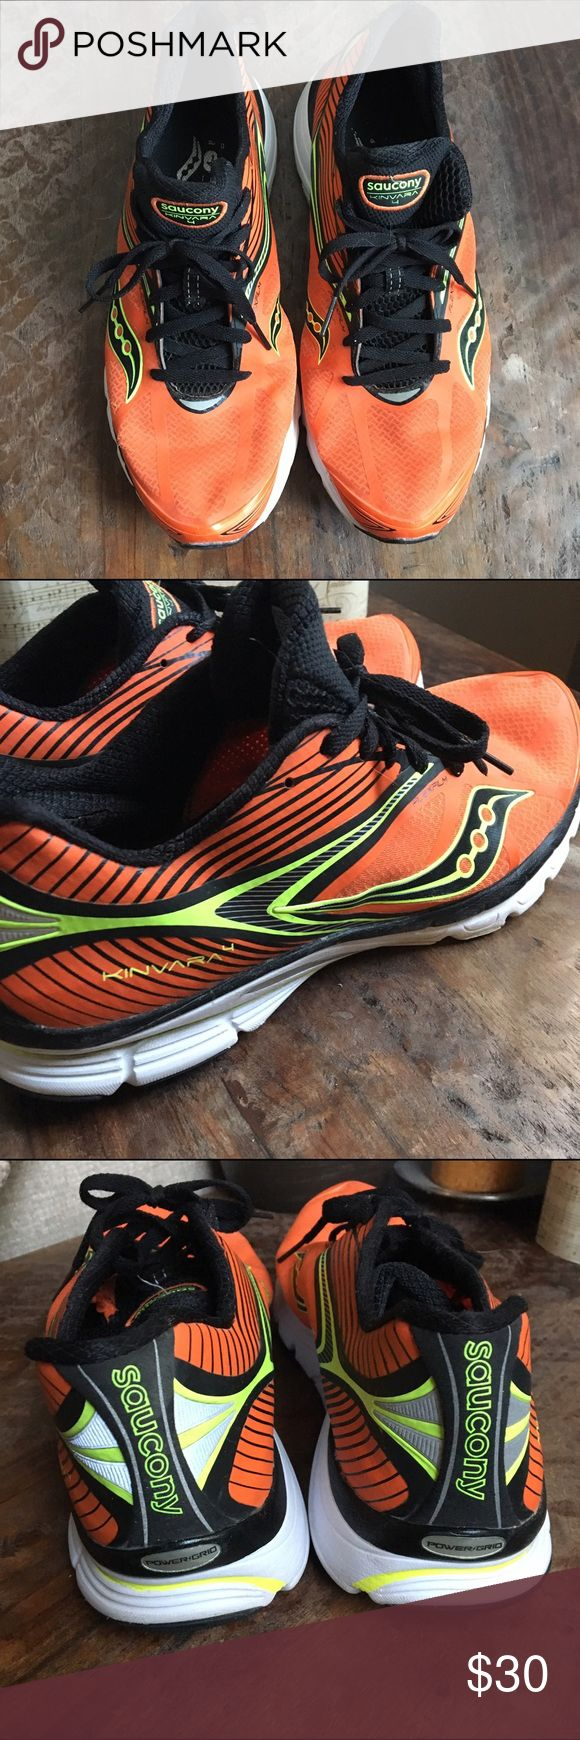 Saucony kinvara 4 men's running shoes Saucony men's running shoes kinvara 4. Excellent condition, gently used and cared for by an OCD triathlete 👌🏻 still smell as if they were just taken out of the box 📦 👌🏻.           ⭐️Bundle to save.                                             ⭐️Will ship out same day(unless purchased on Saturday).                                                 ⭐️Smoke free home. Saucony Shoes Athletic Shoes